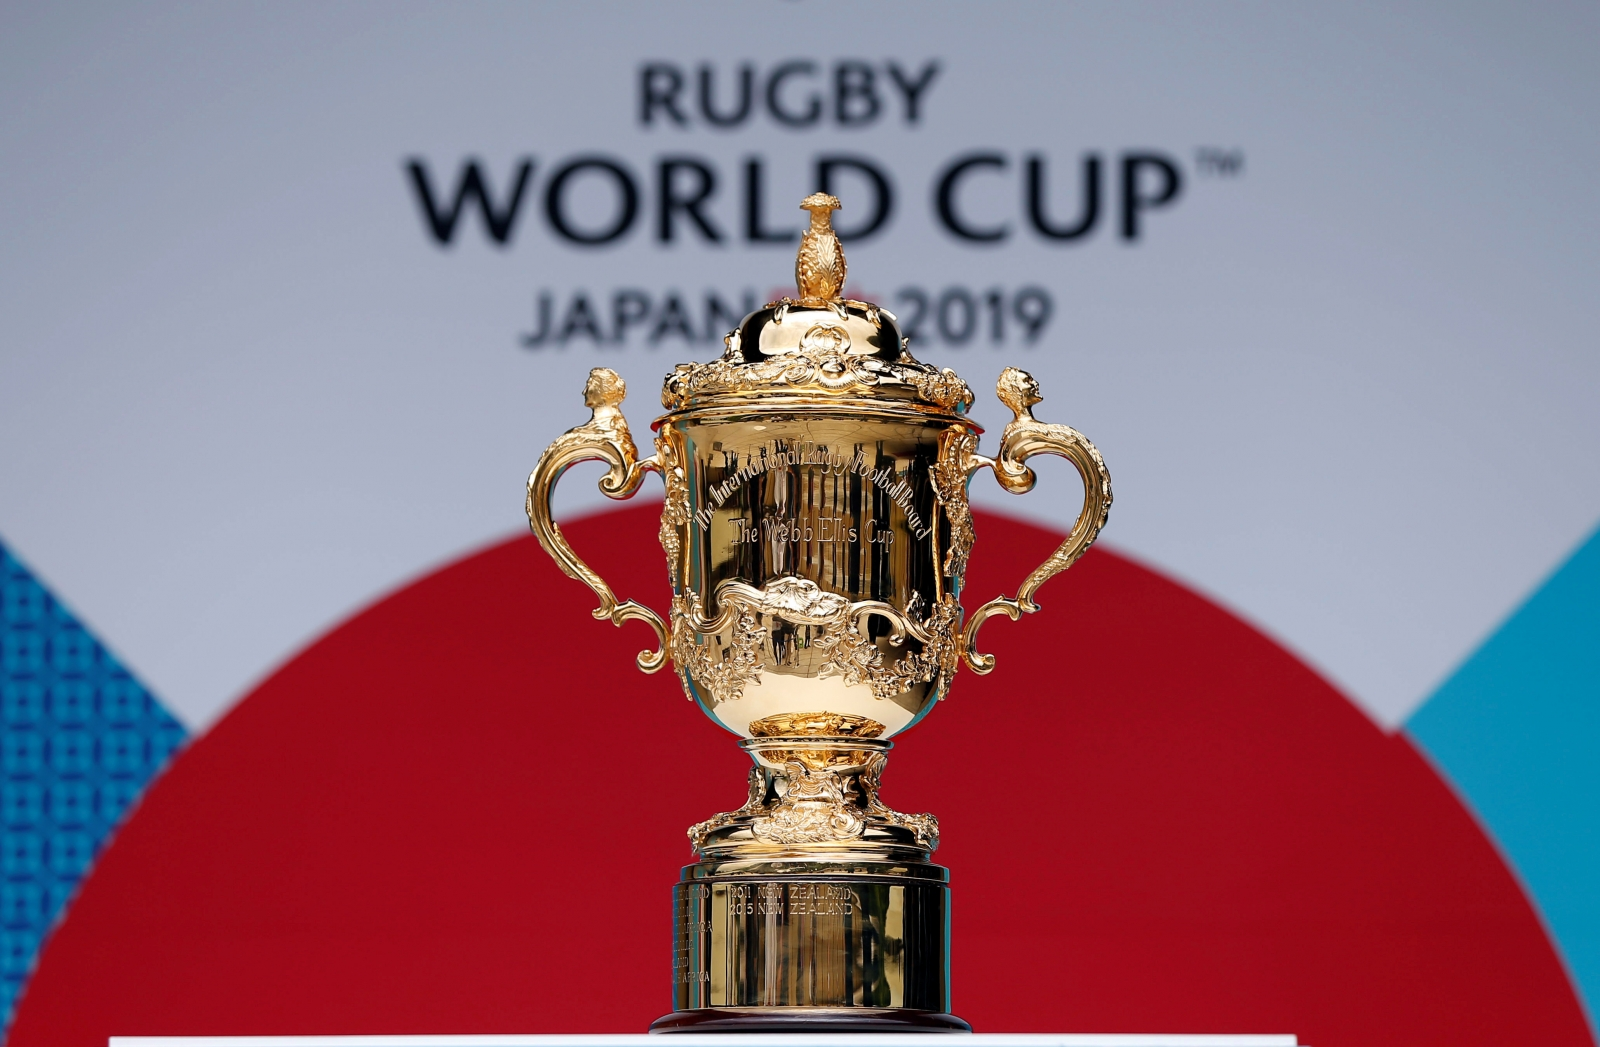 rugby world cup 2019 - photo #15